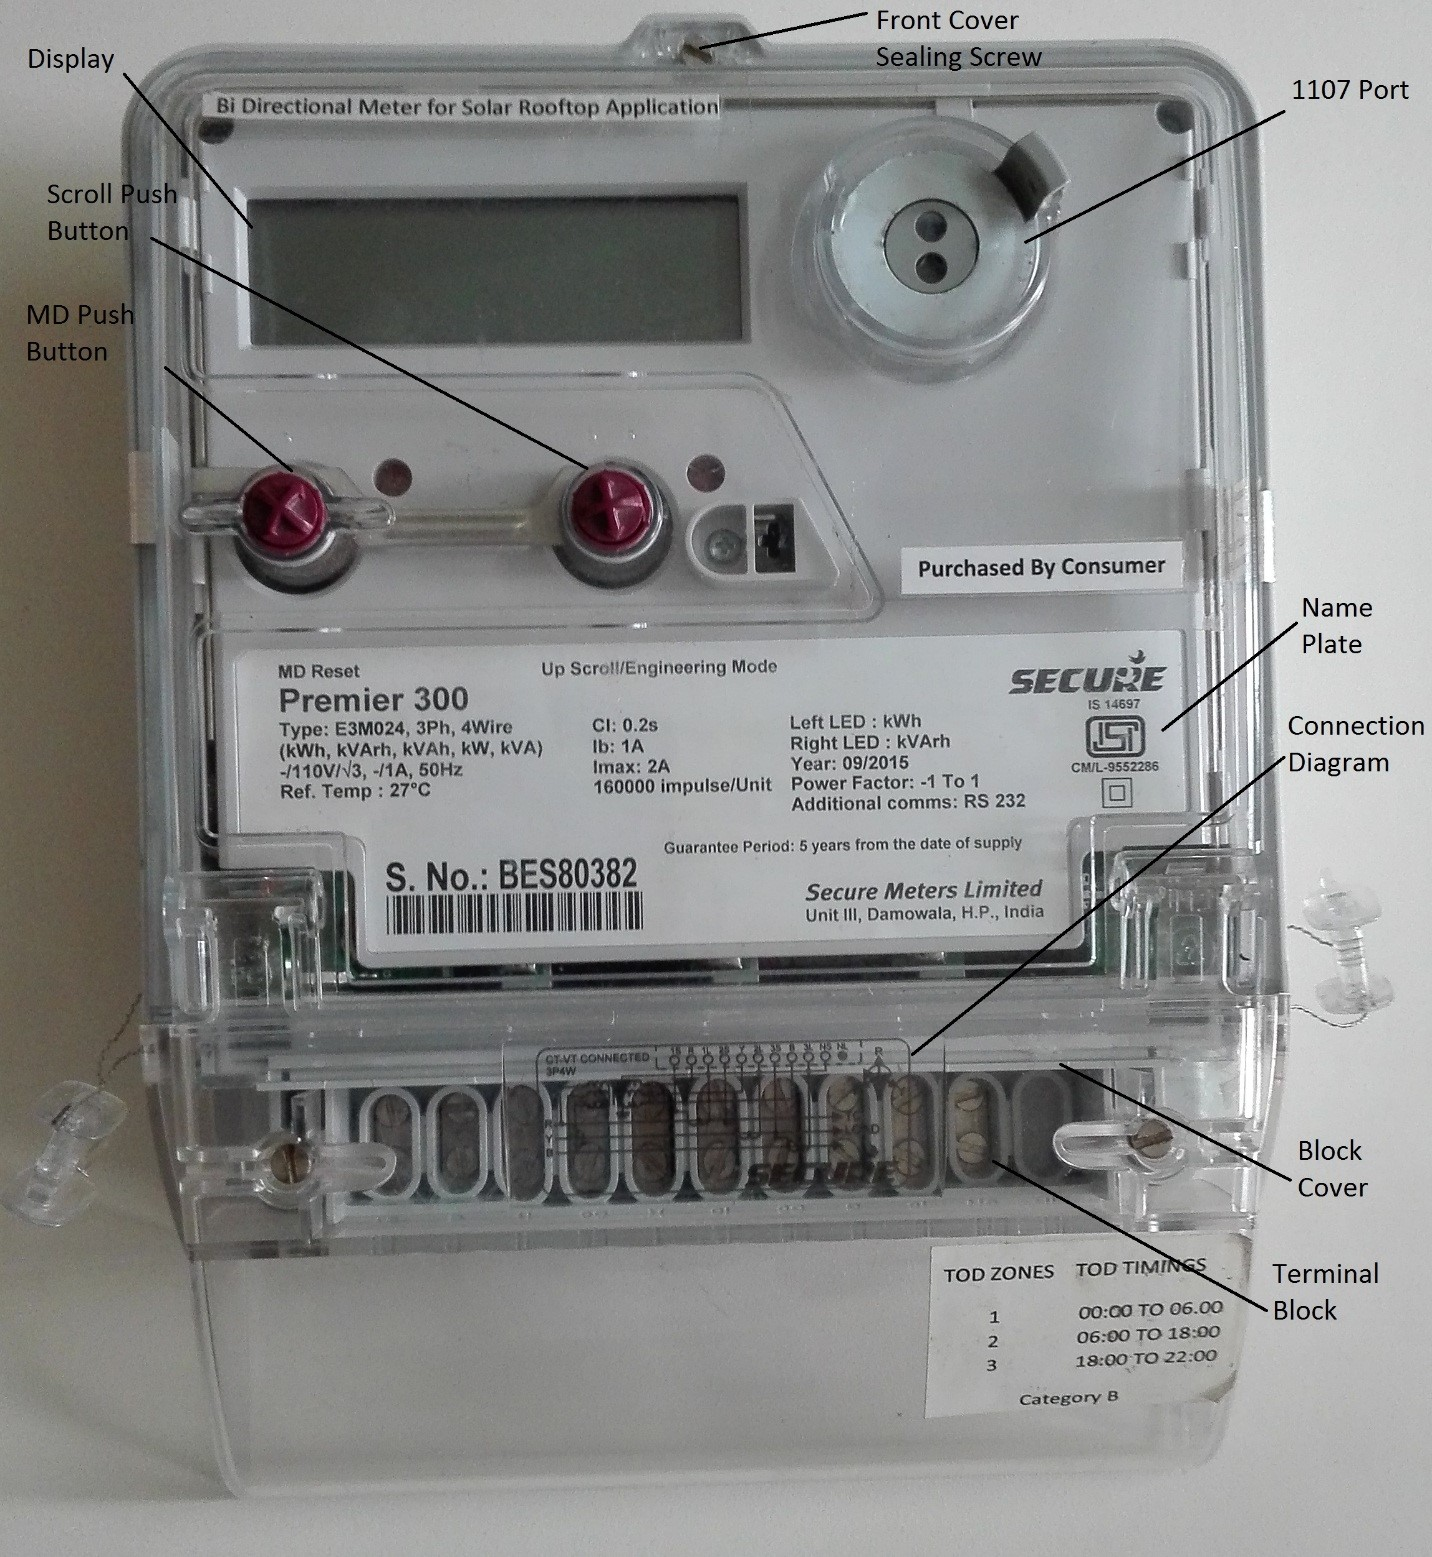 hight resolution of 01 shows front view of a single phase solar bi directional meter following are the parts of the meter